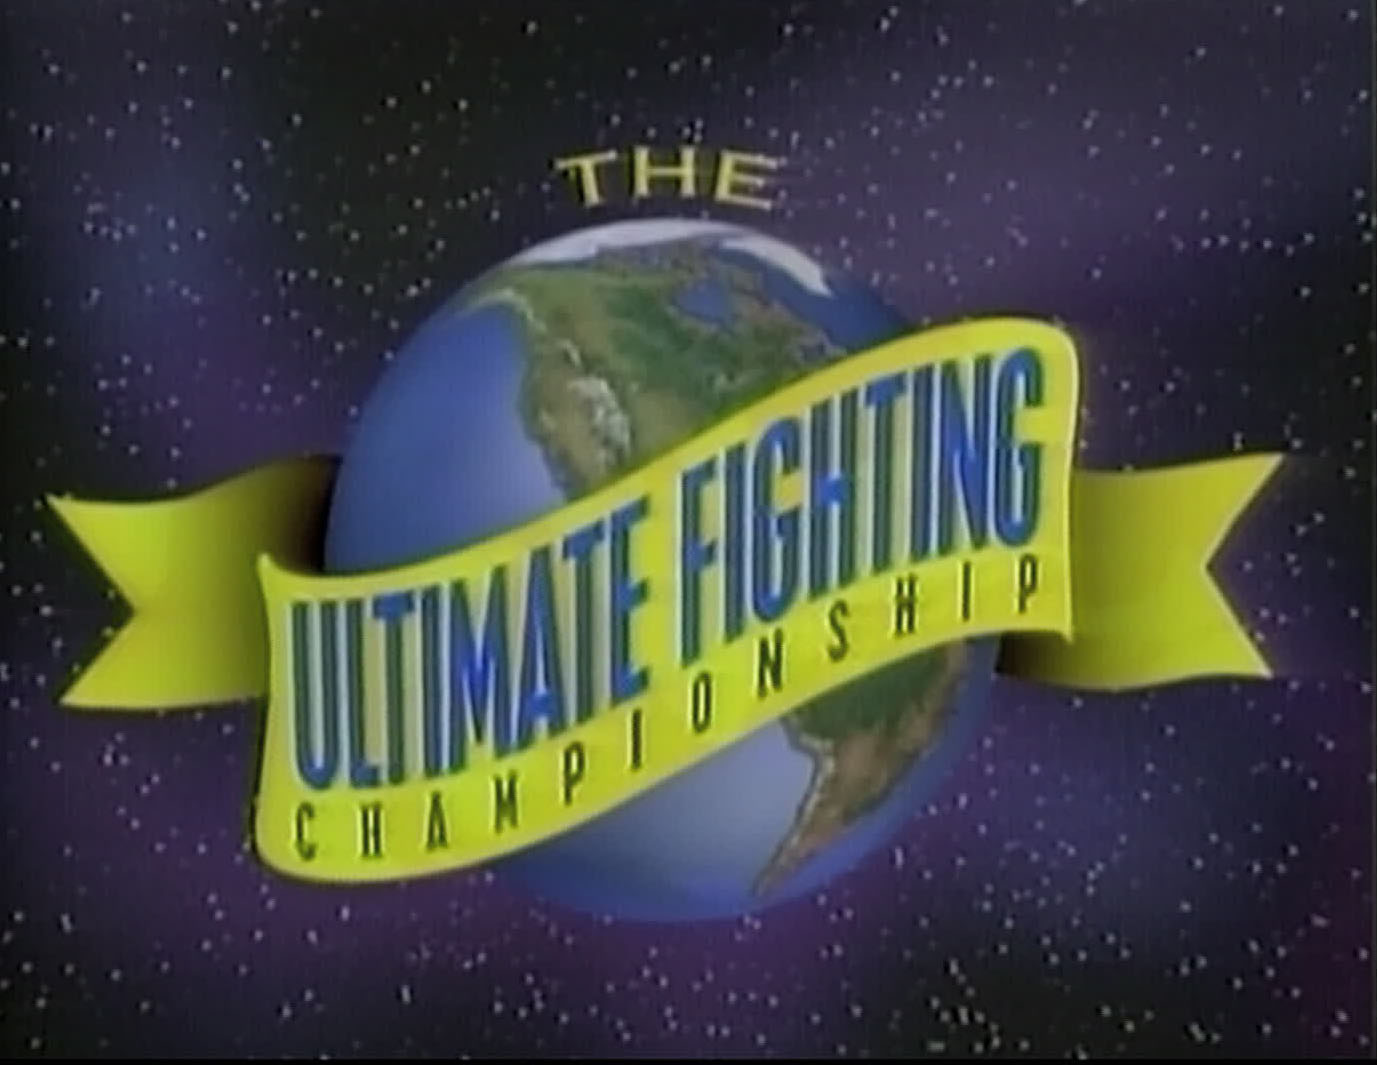 The original UFC logo